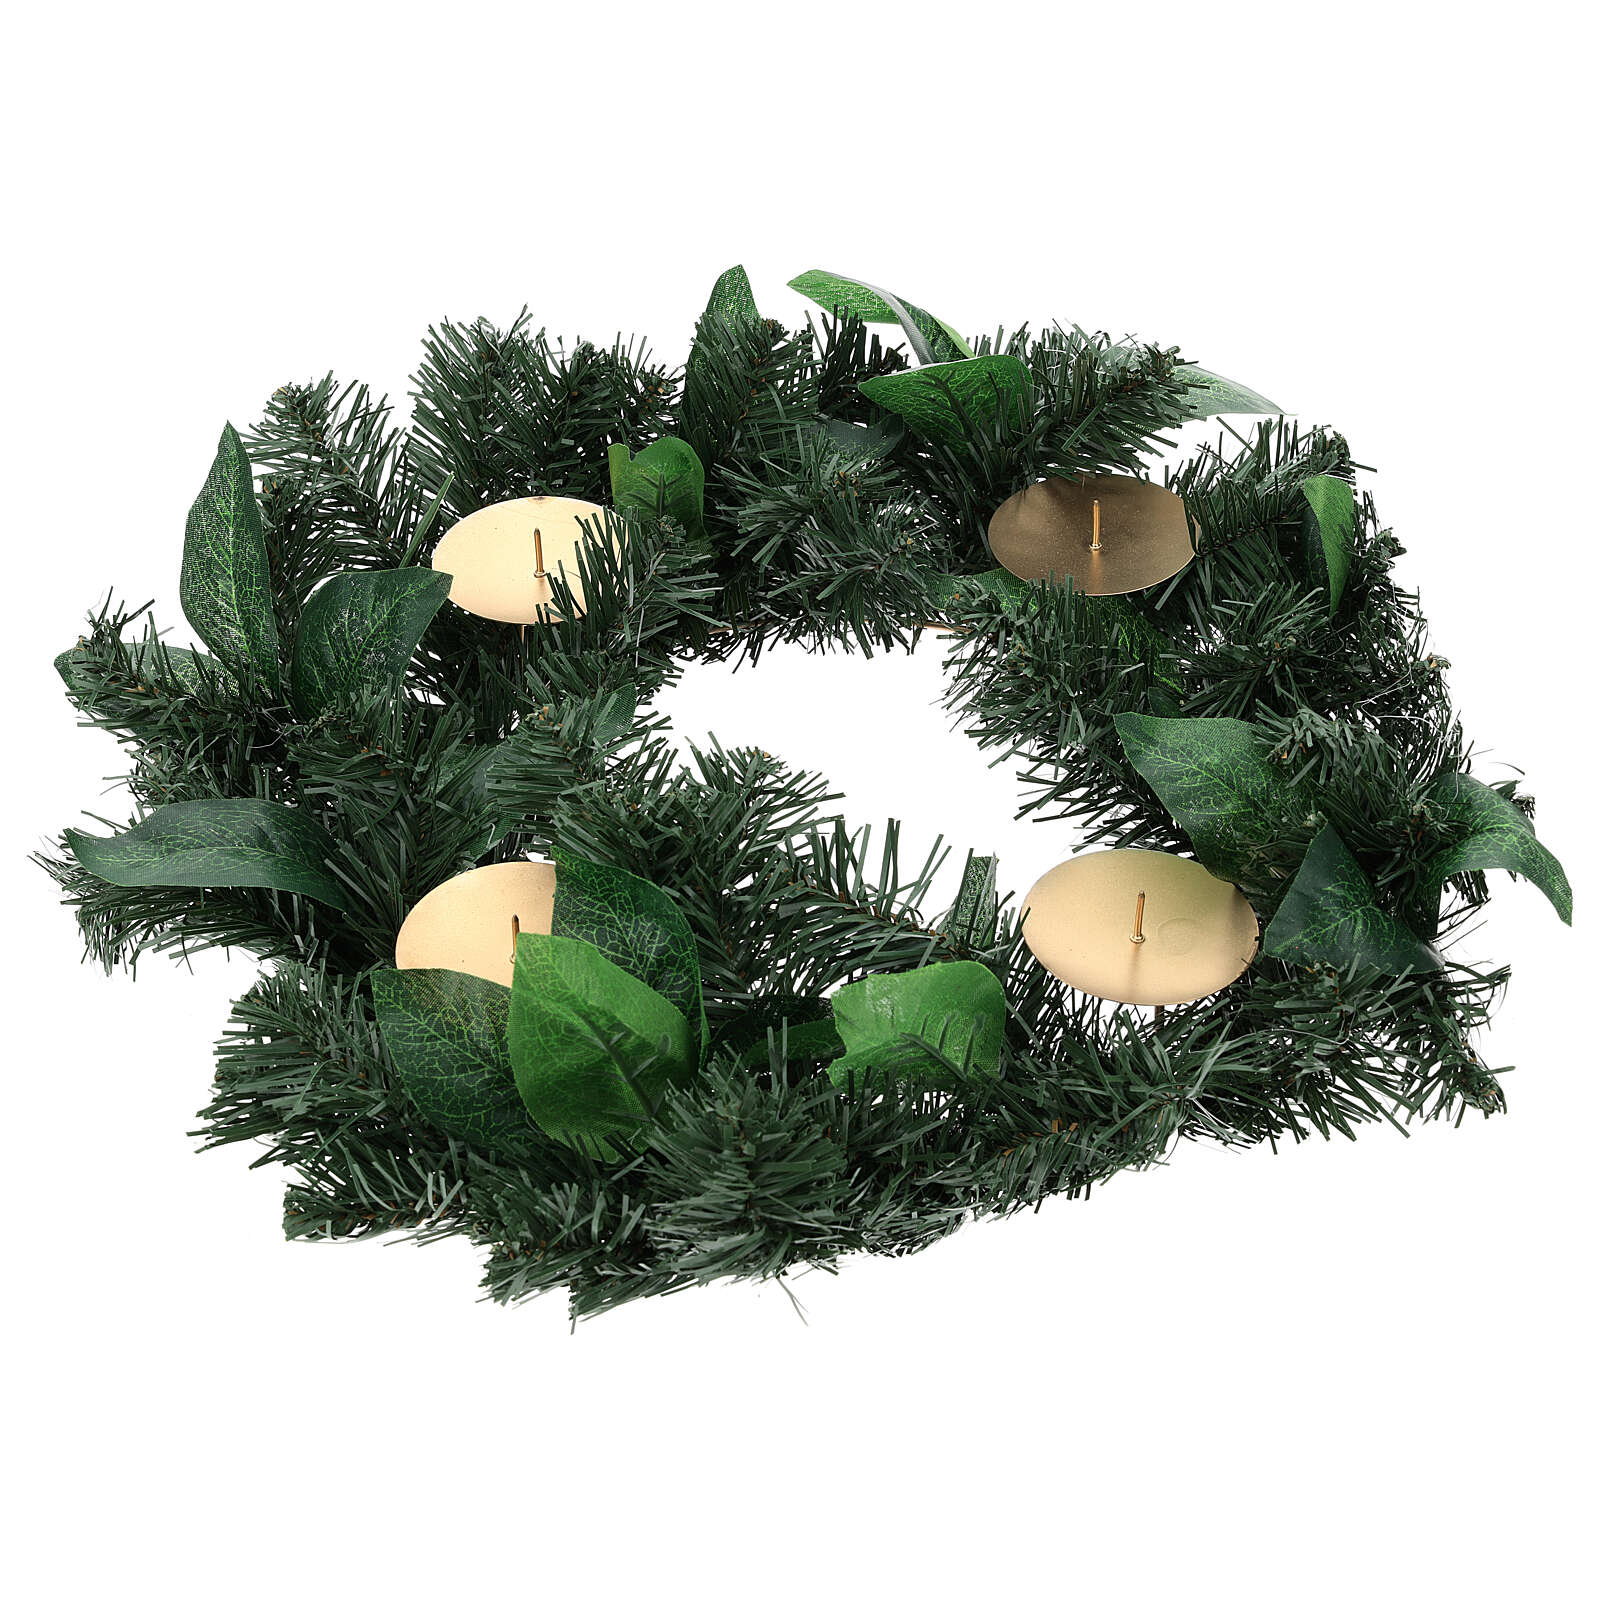 Advent garland with no decorations 3